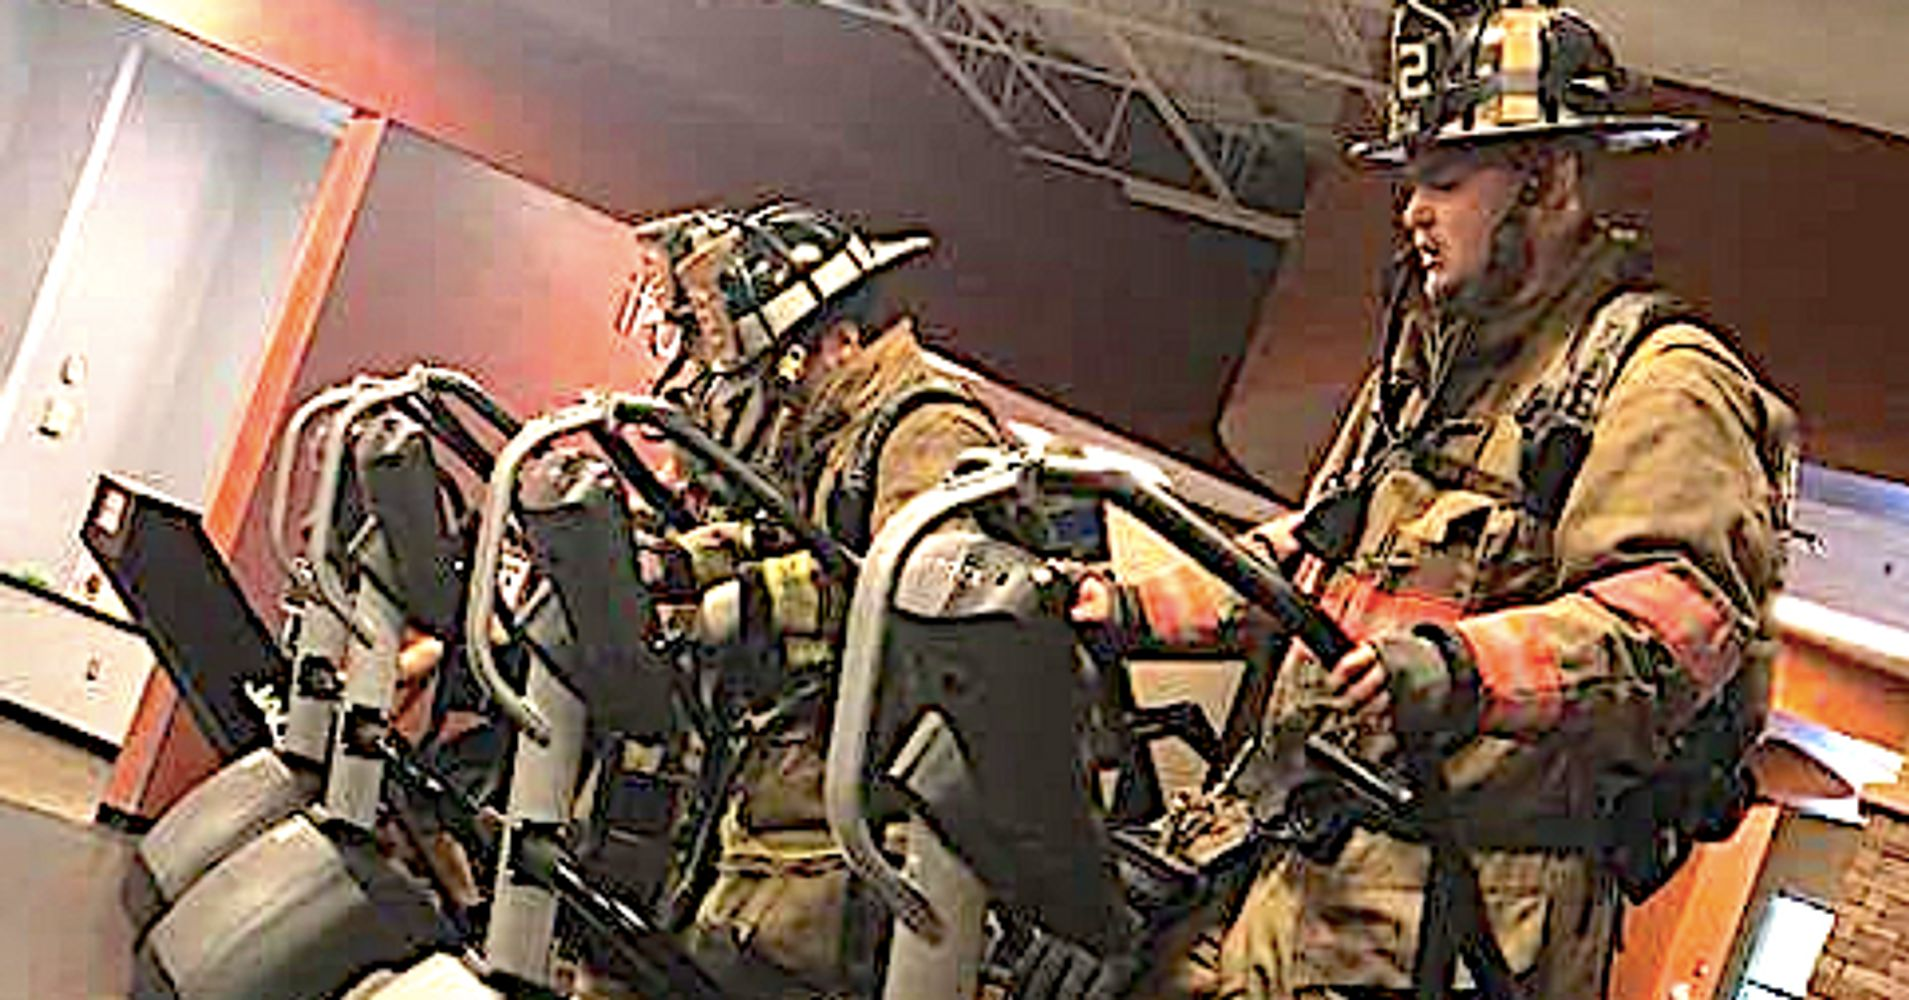 Firefighters Pay Tribute To 9 11 Heroes By Climbing 110